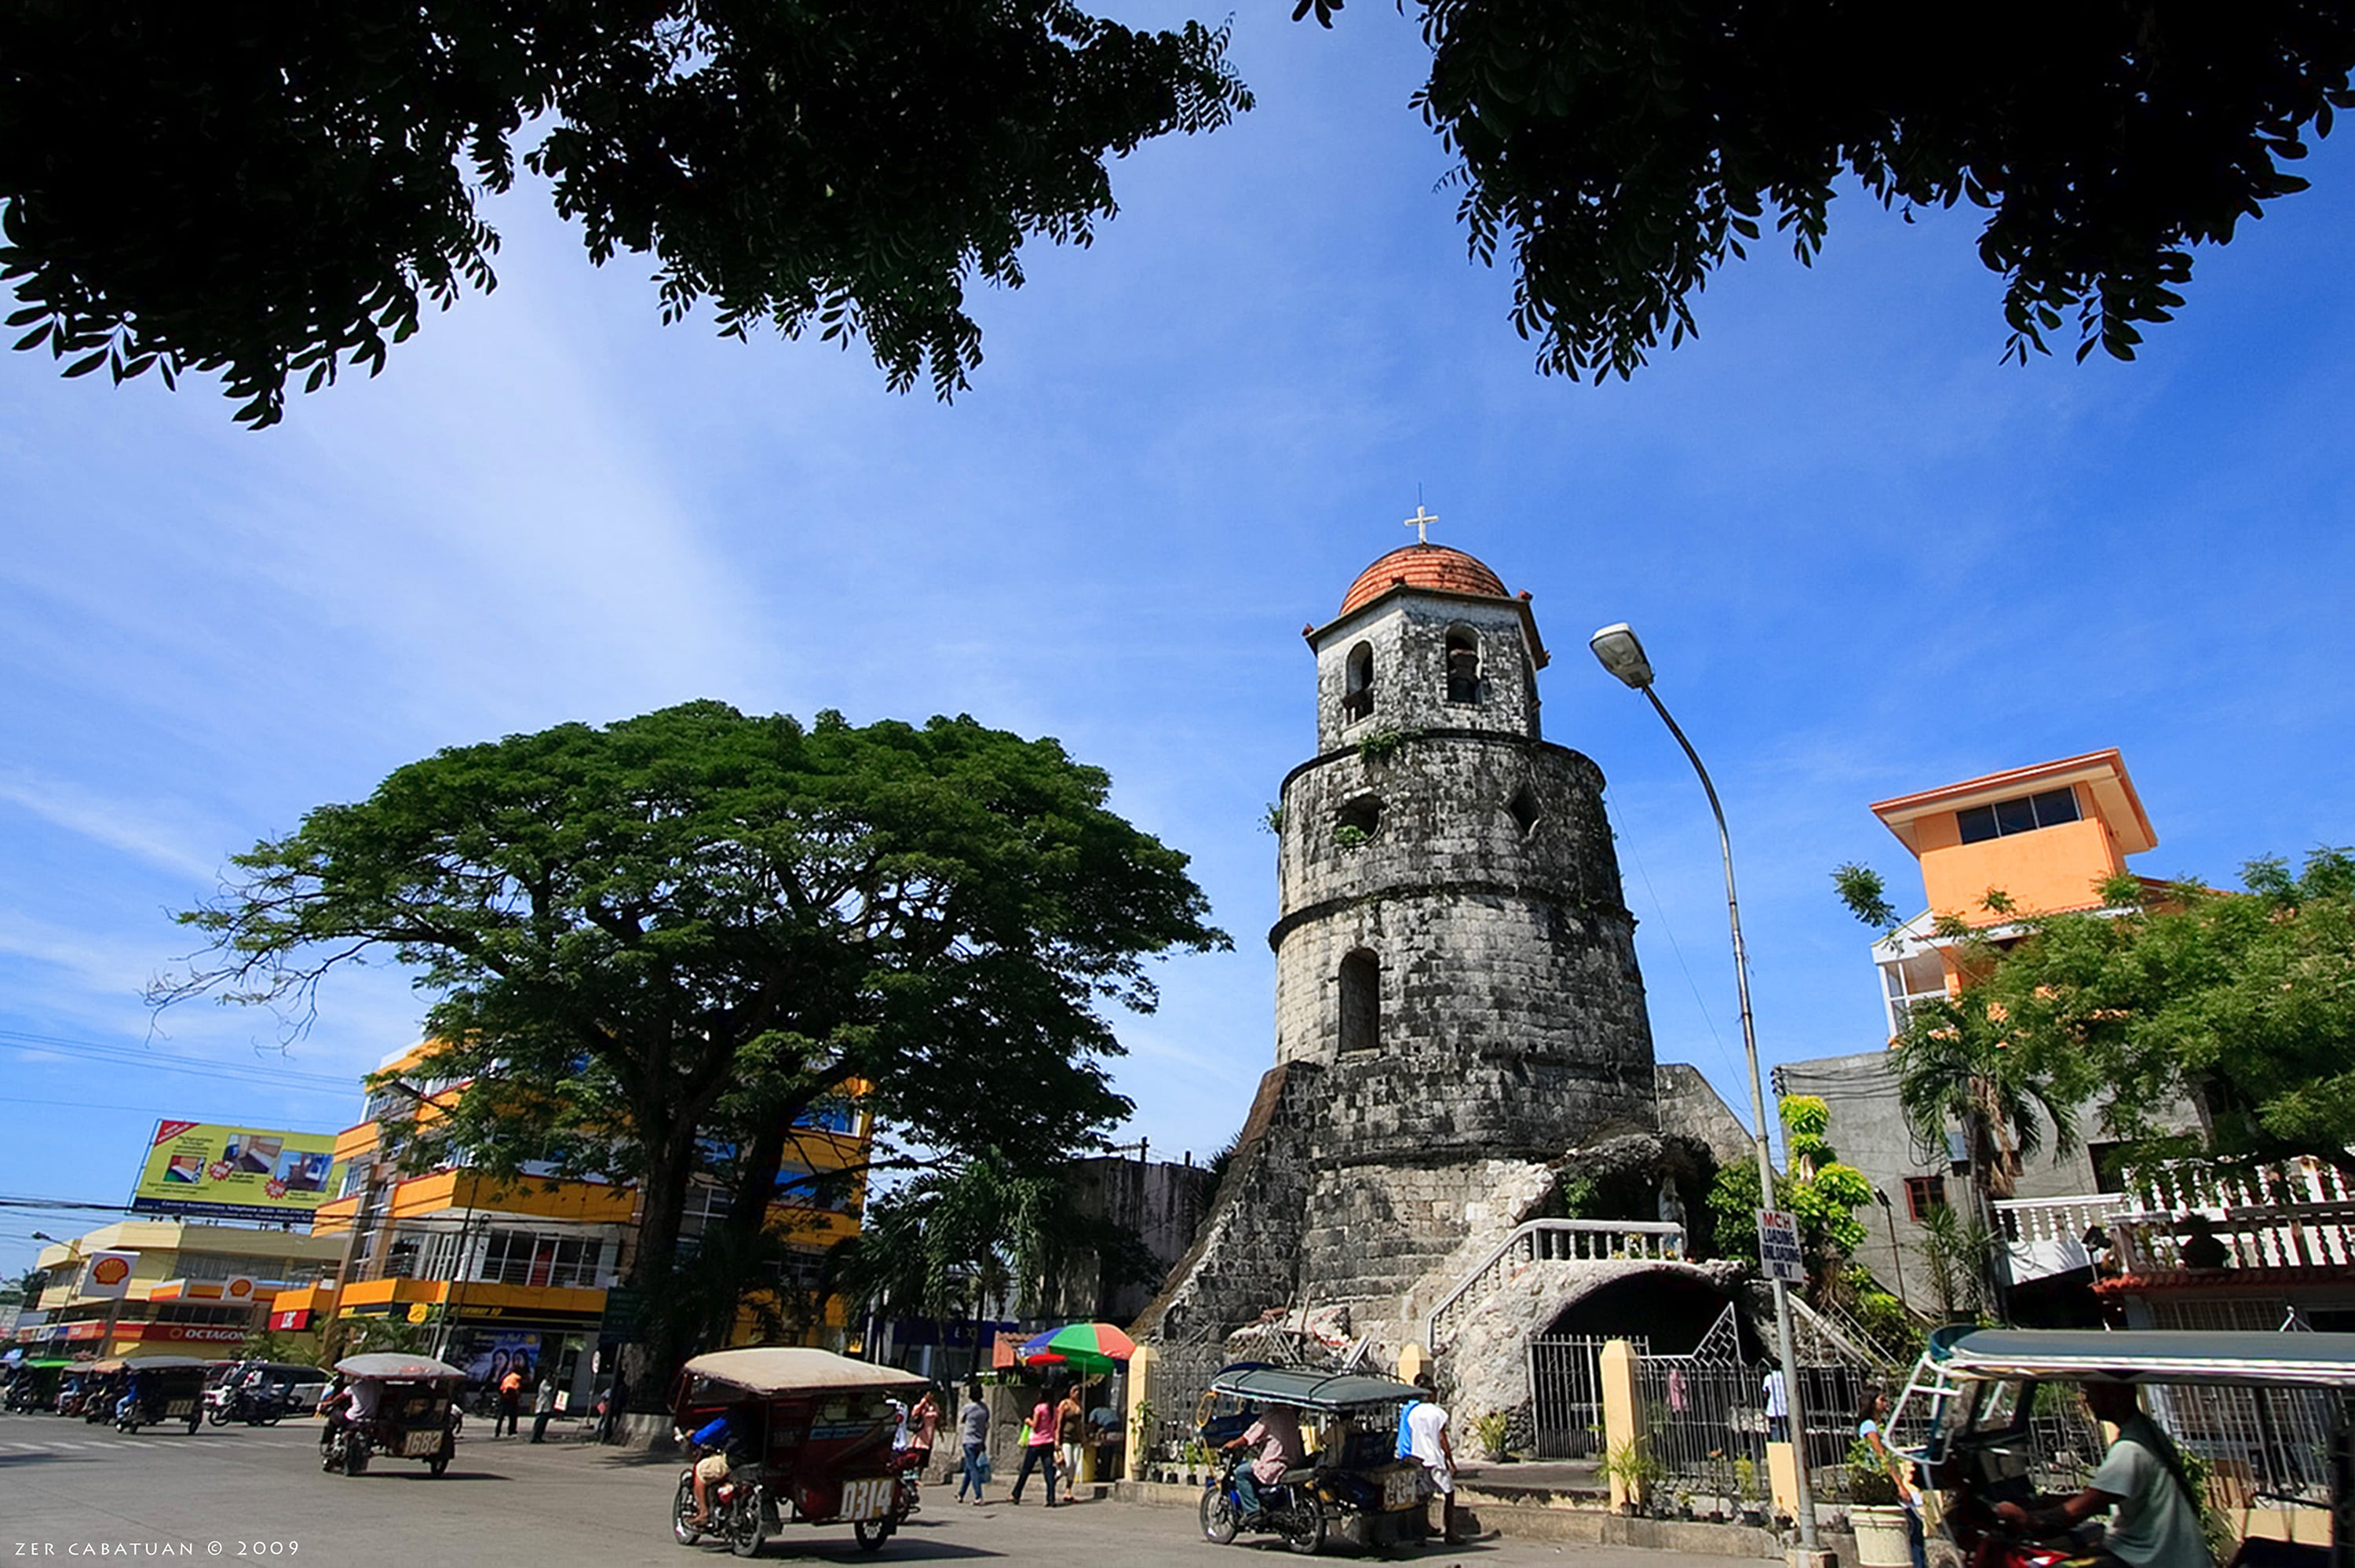 View of the Belfry Tower in Dumaguete